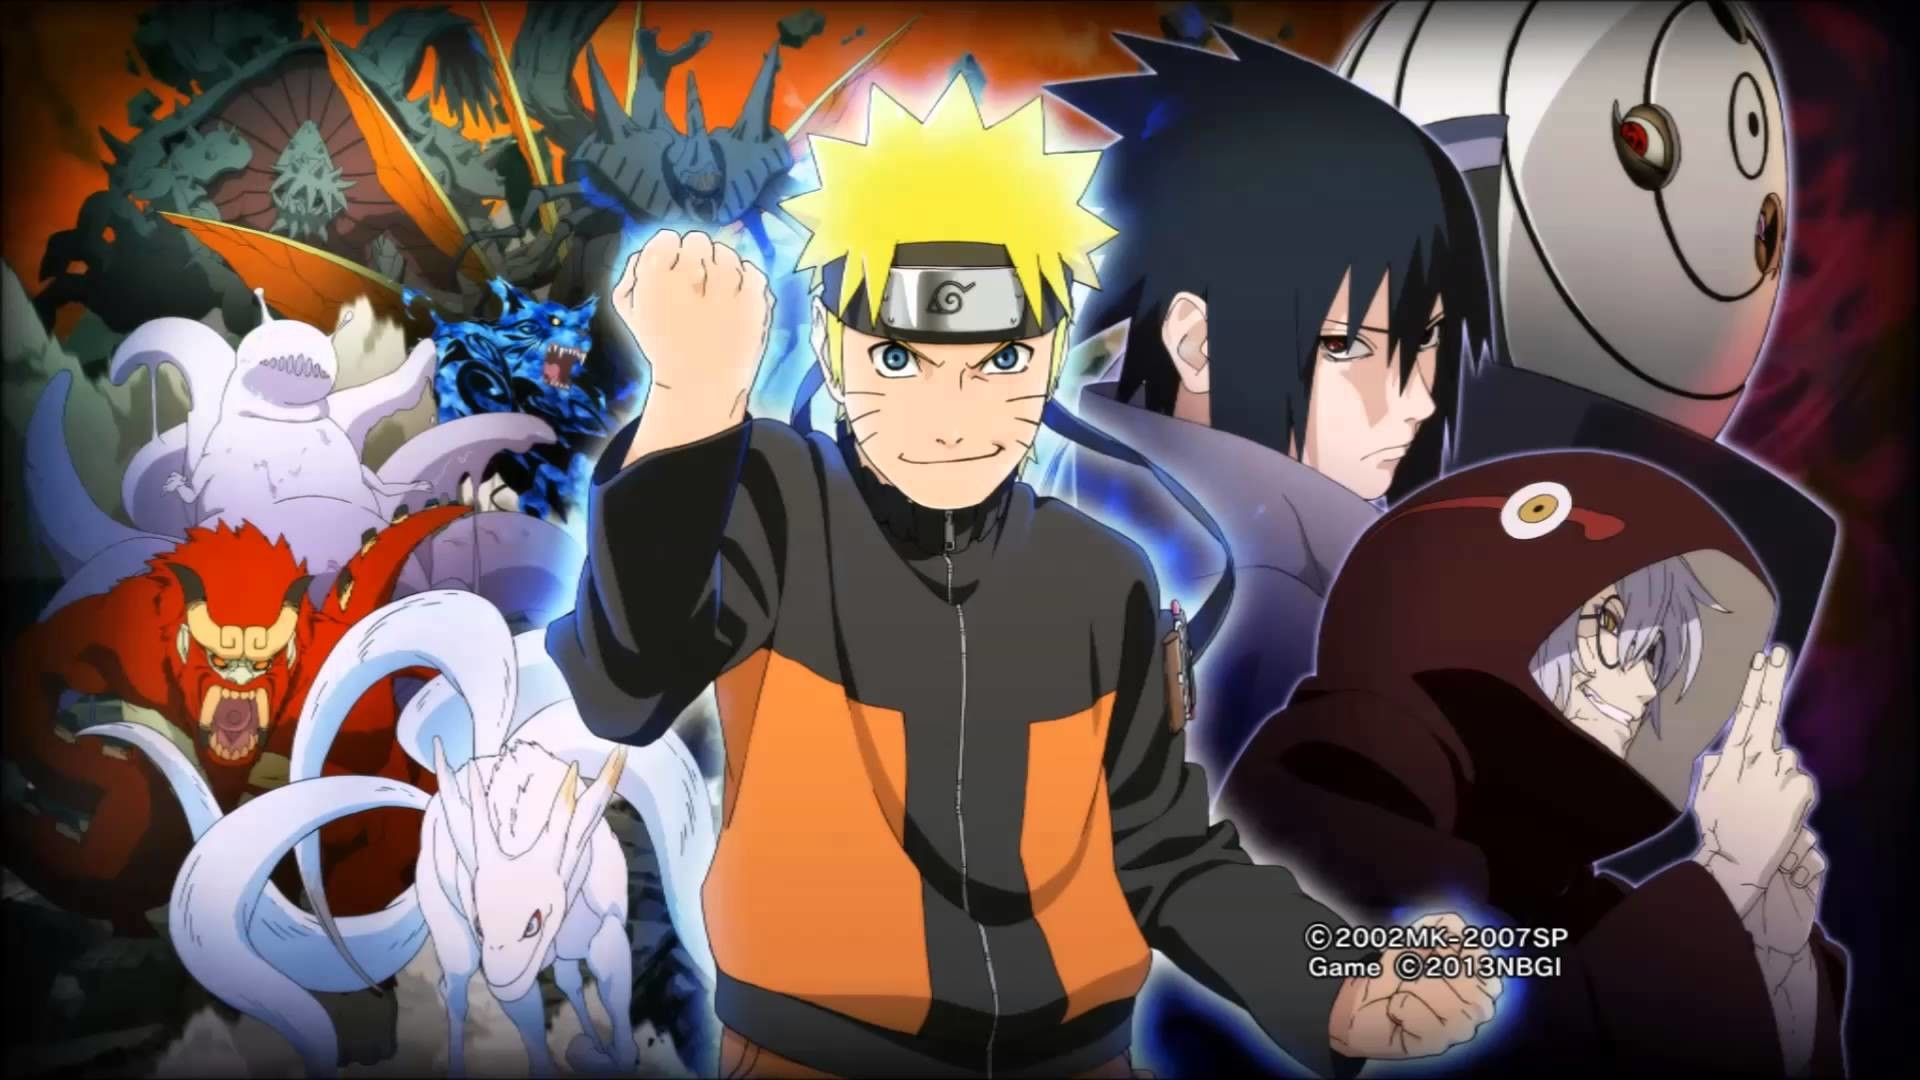 Wallpapers De Naruto Shippuden Hd 2018 63 Images